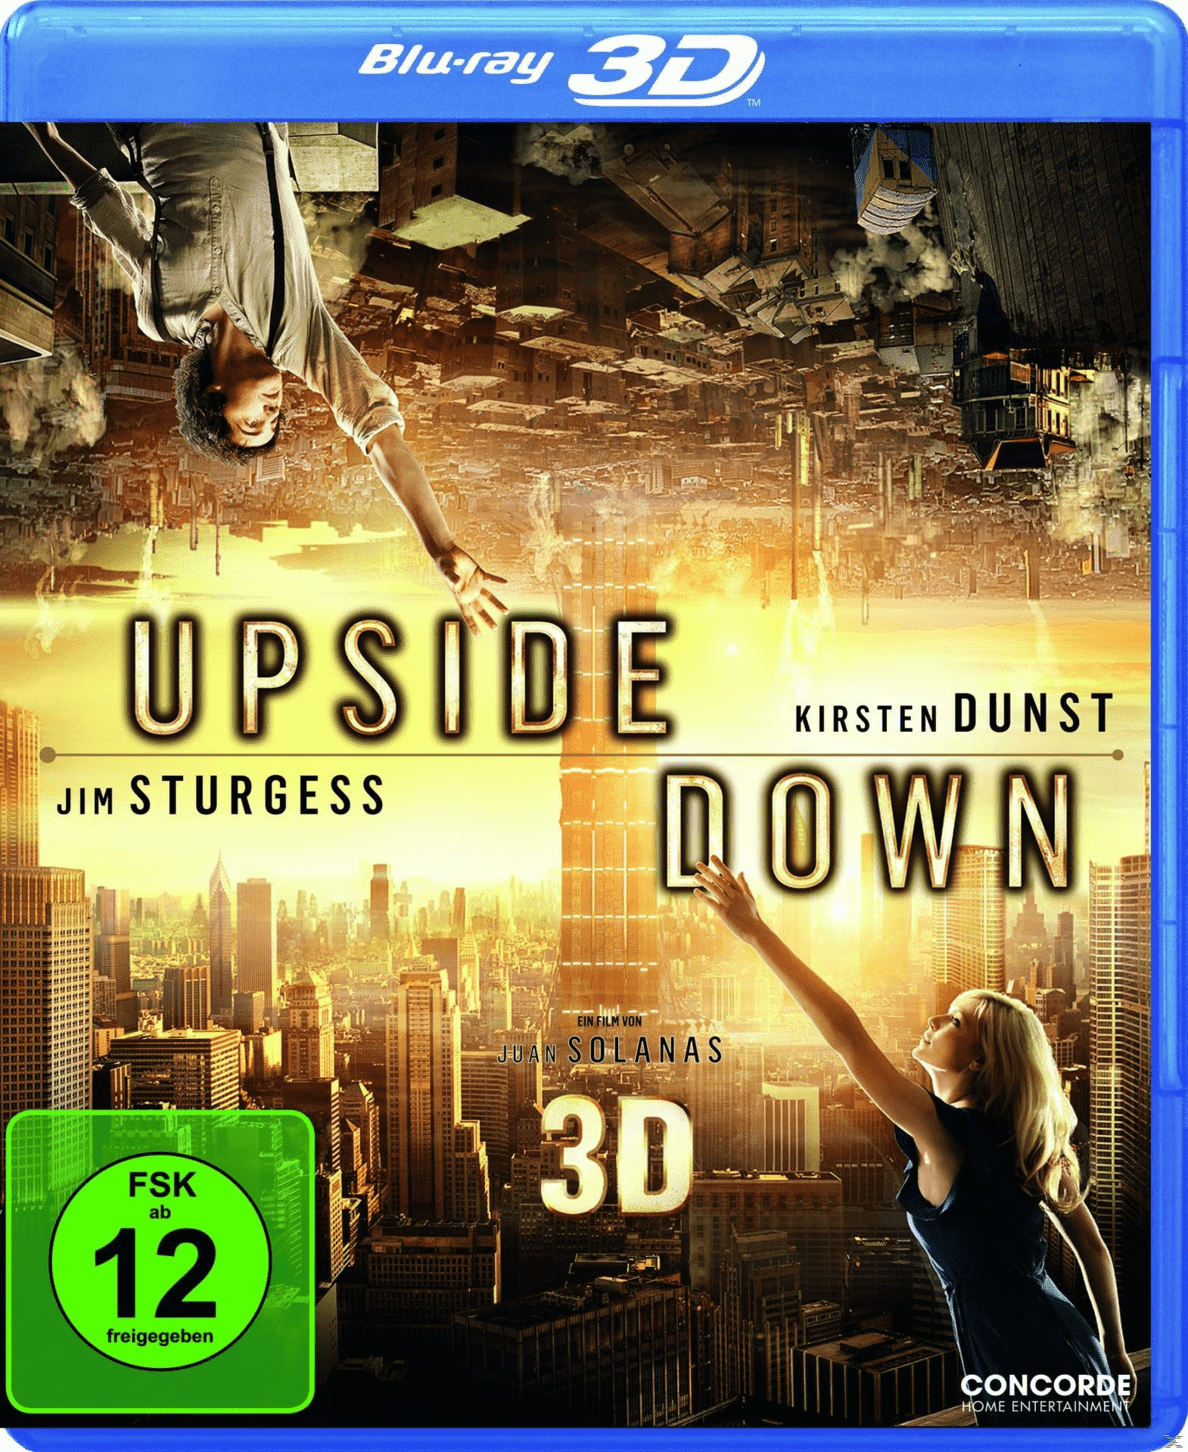 Upside Down auf 3D Blu-ray